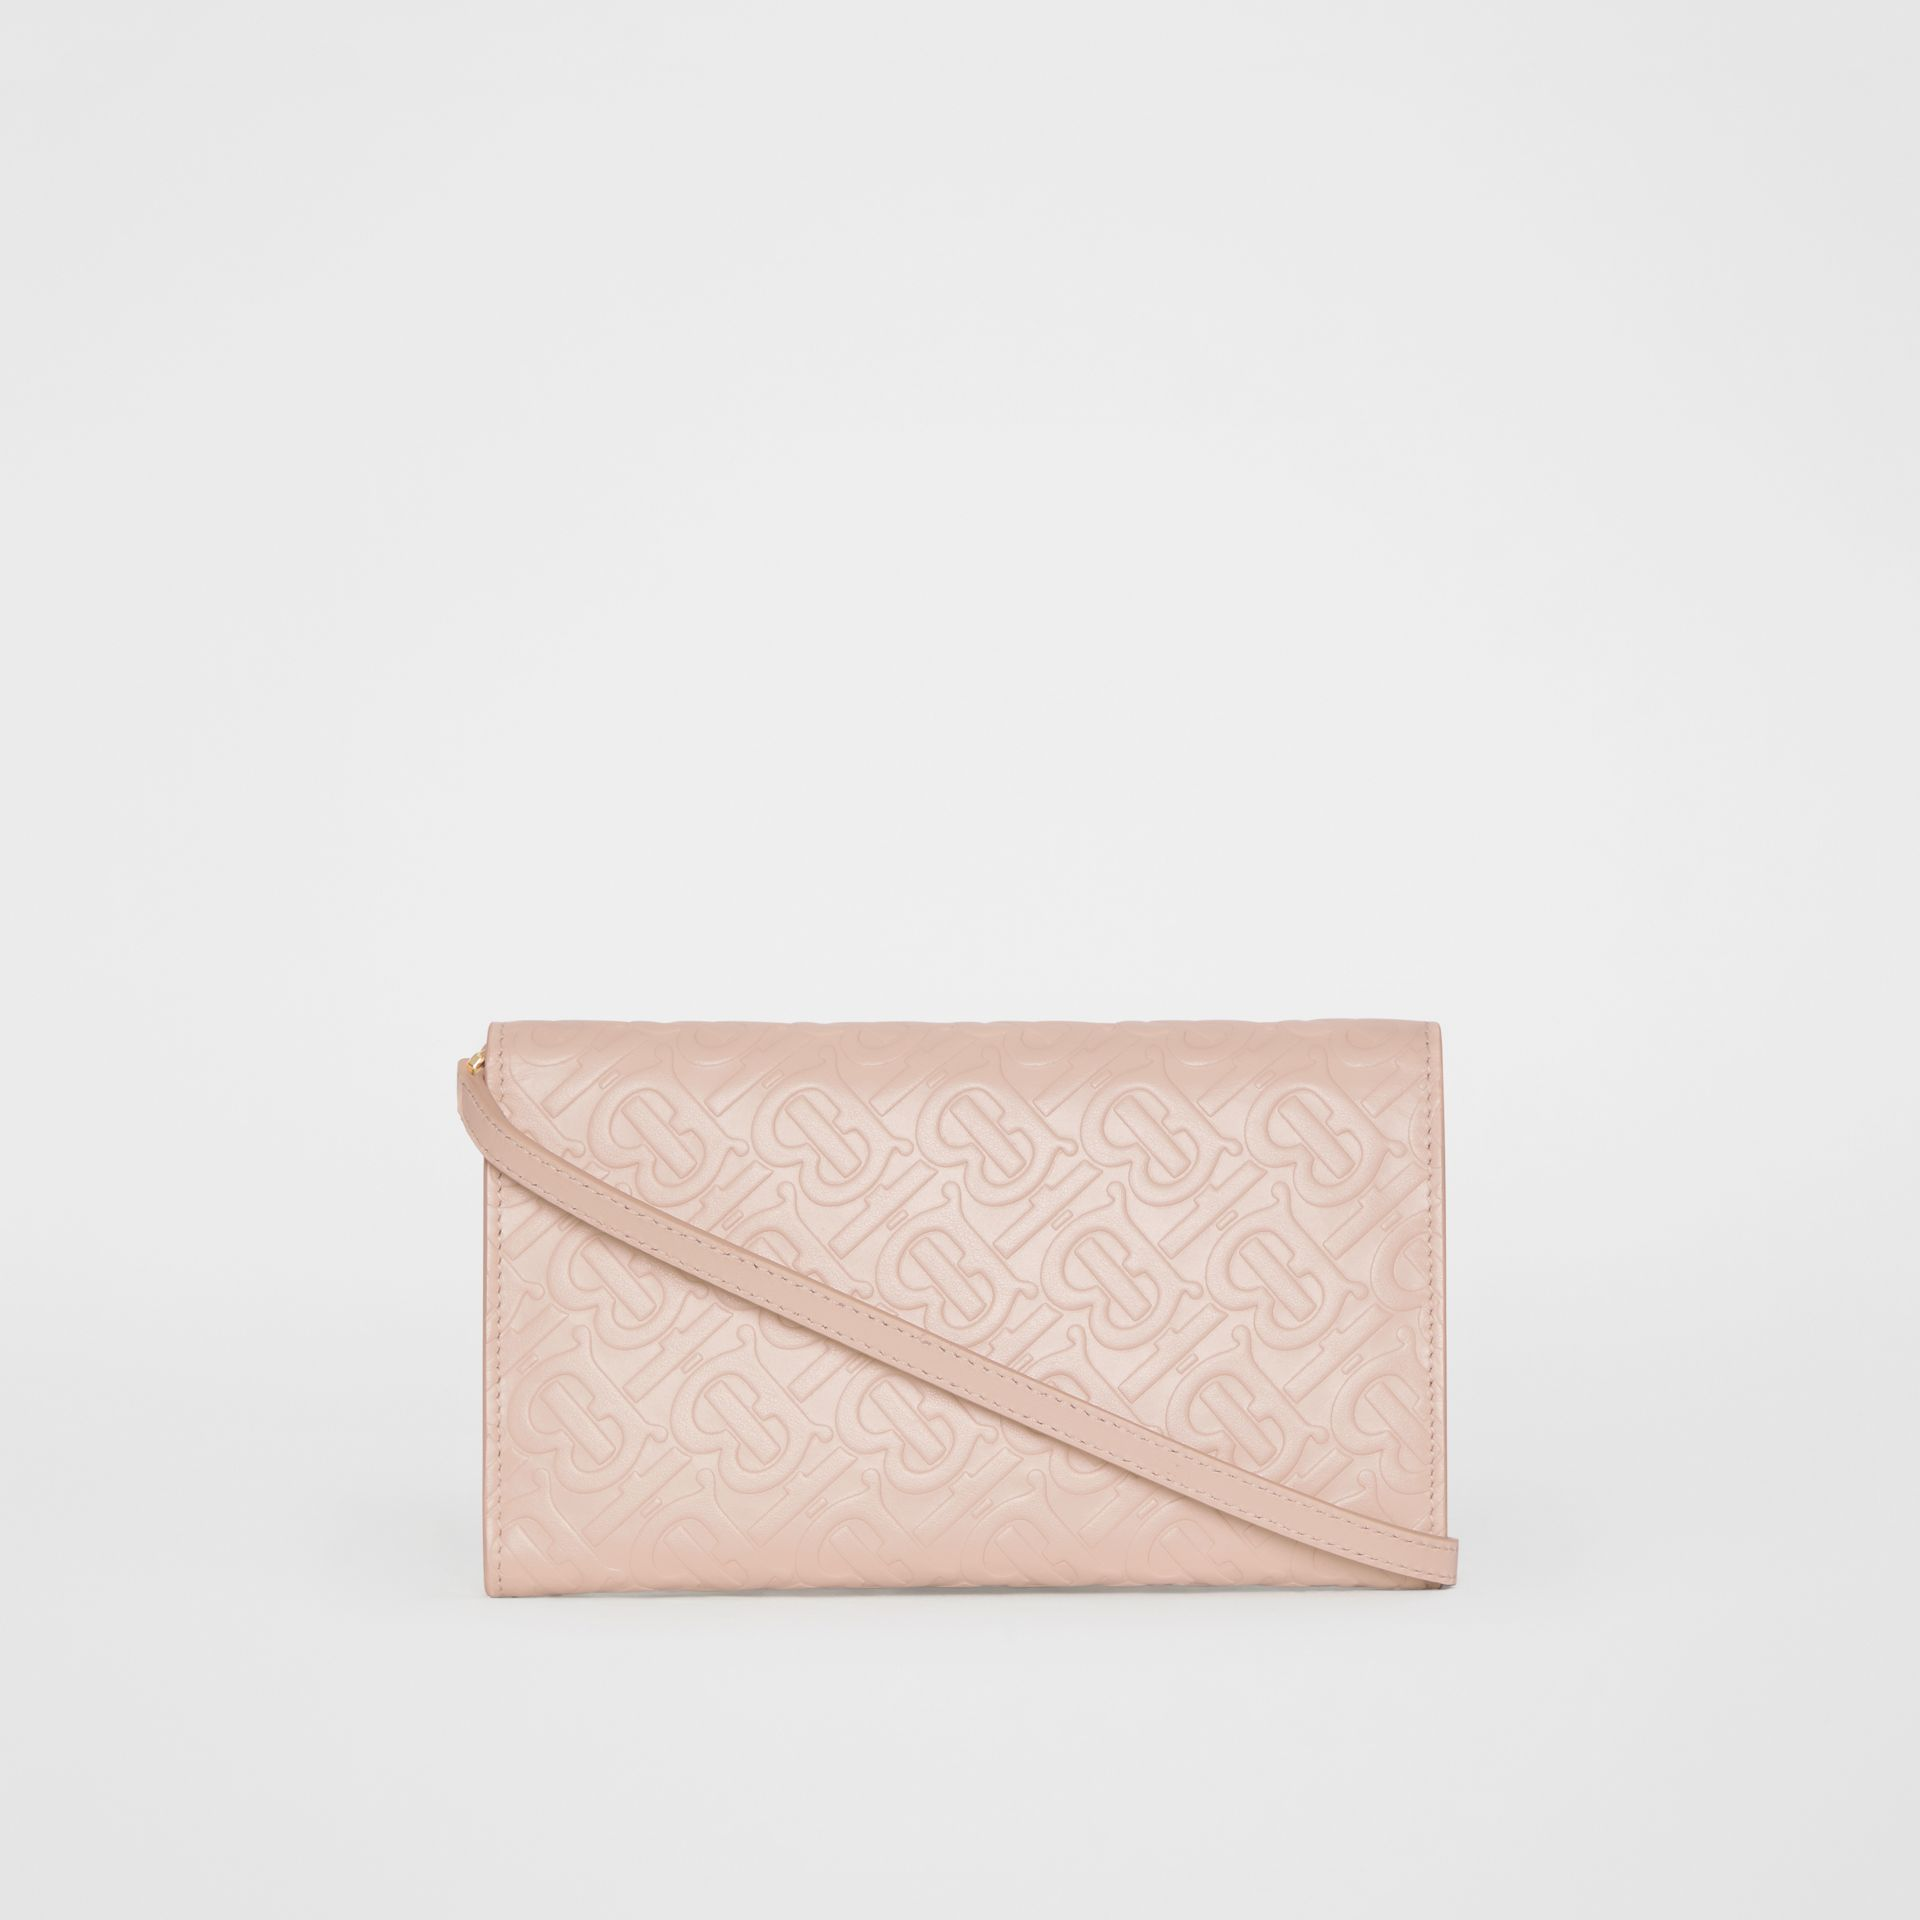 Portefeuille en cuir Monogram et sangle amovible (Beige Rose) - Femme | Burberry - photo de la galerie 6